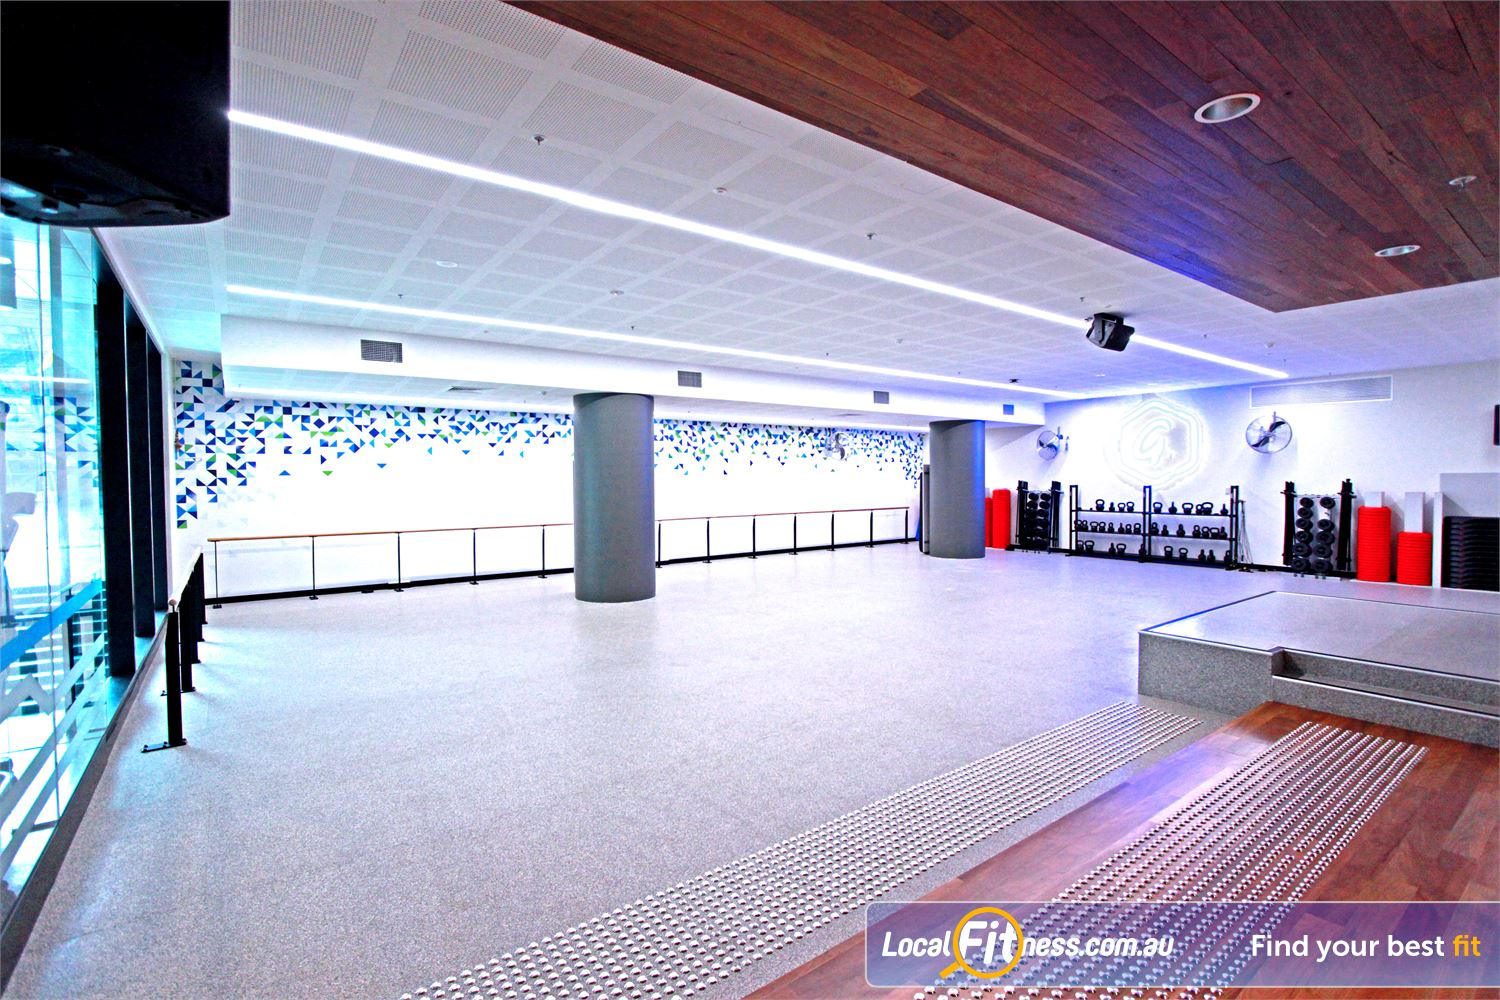 Goodlife Health Clubs Docklands This architecturally-designed Goodlife group fitness studio with over 35 classes.